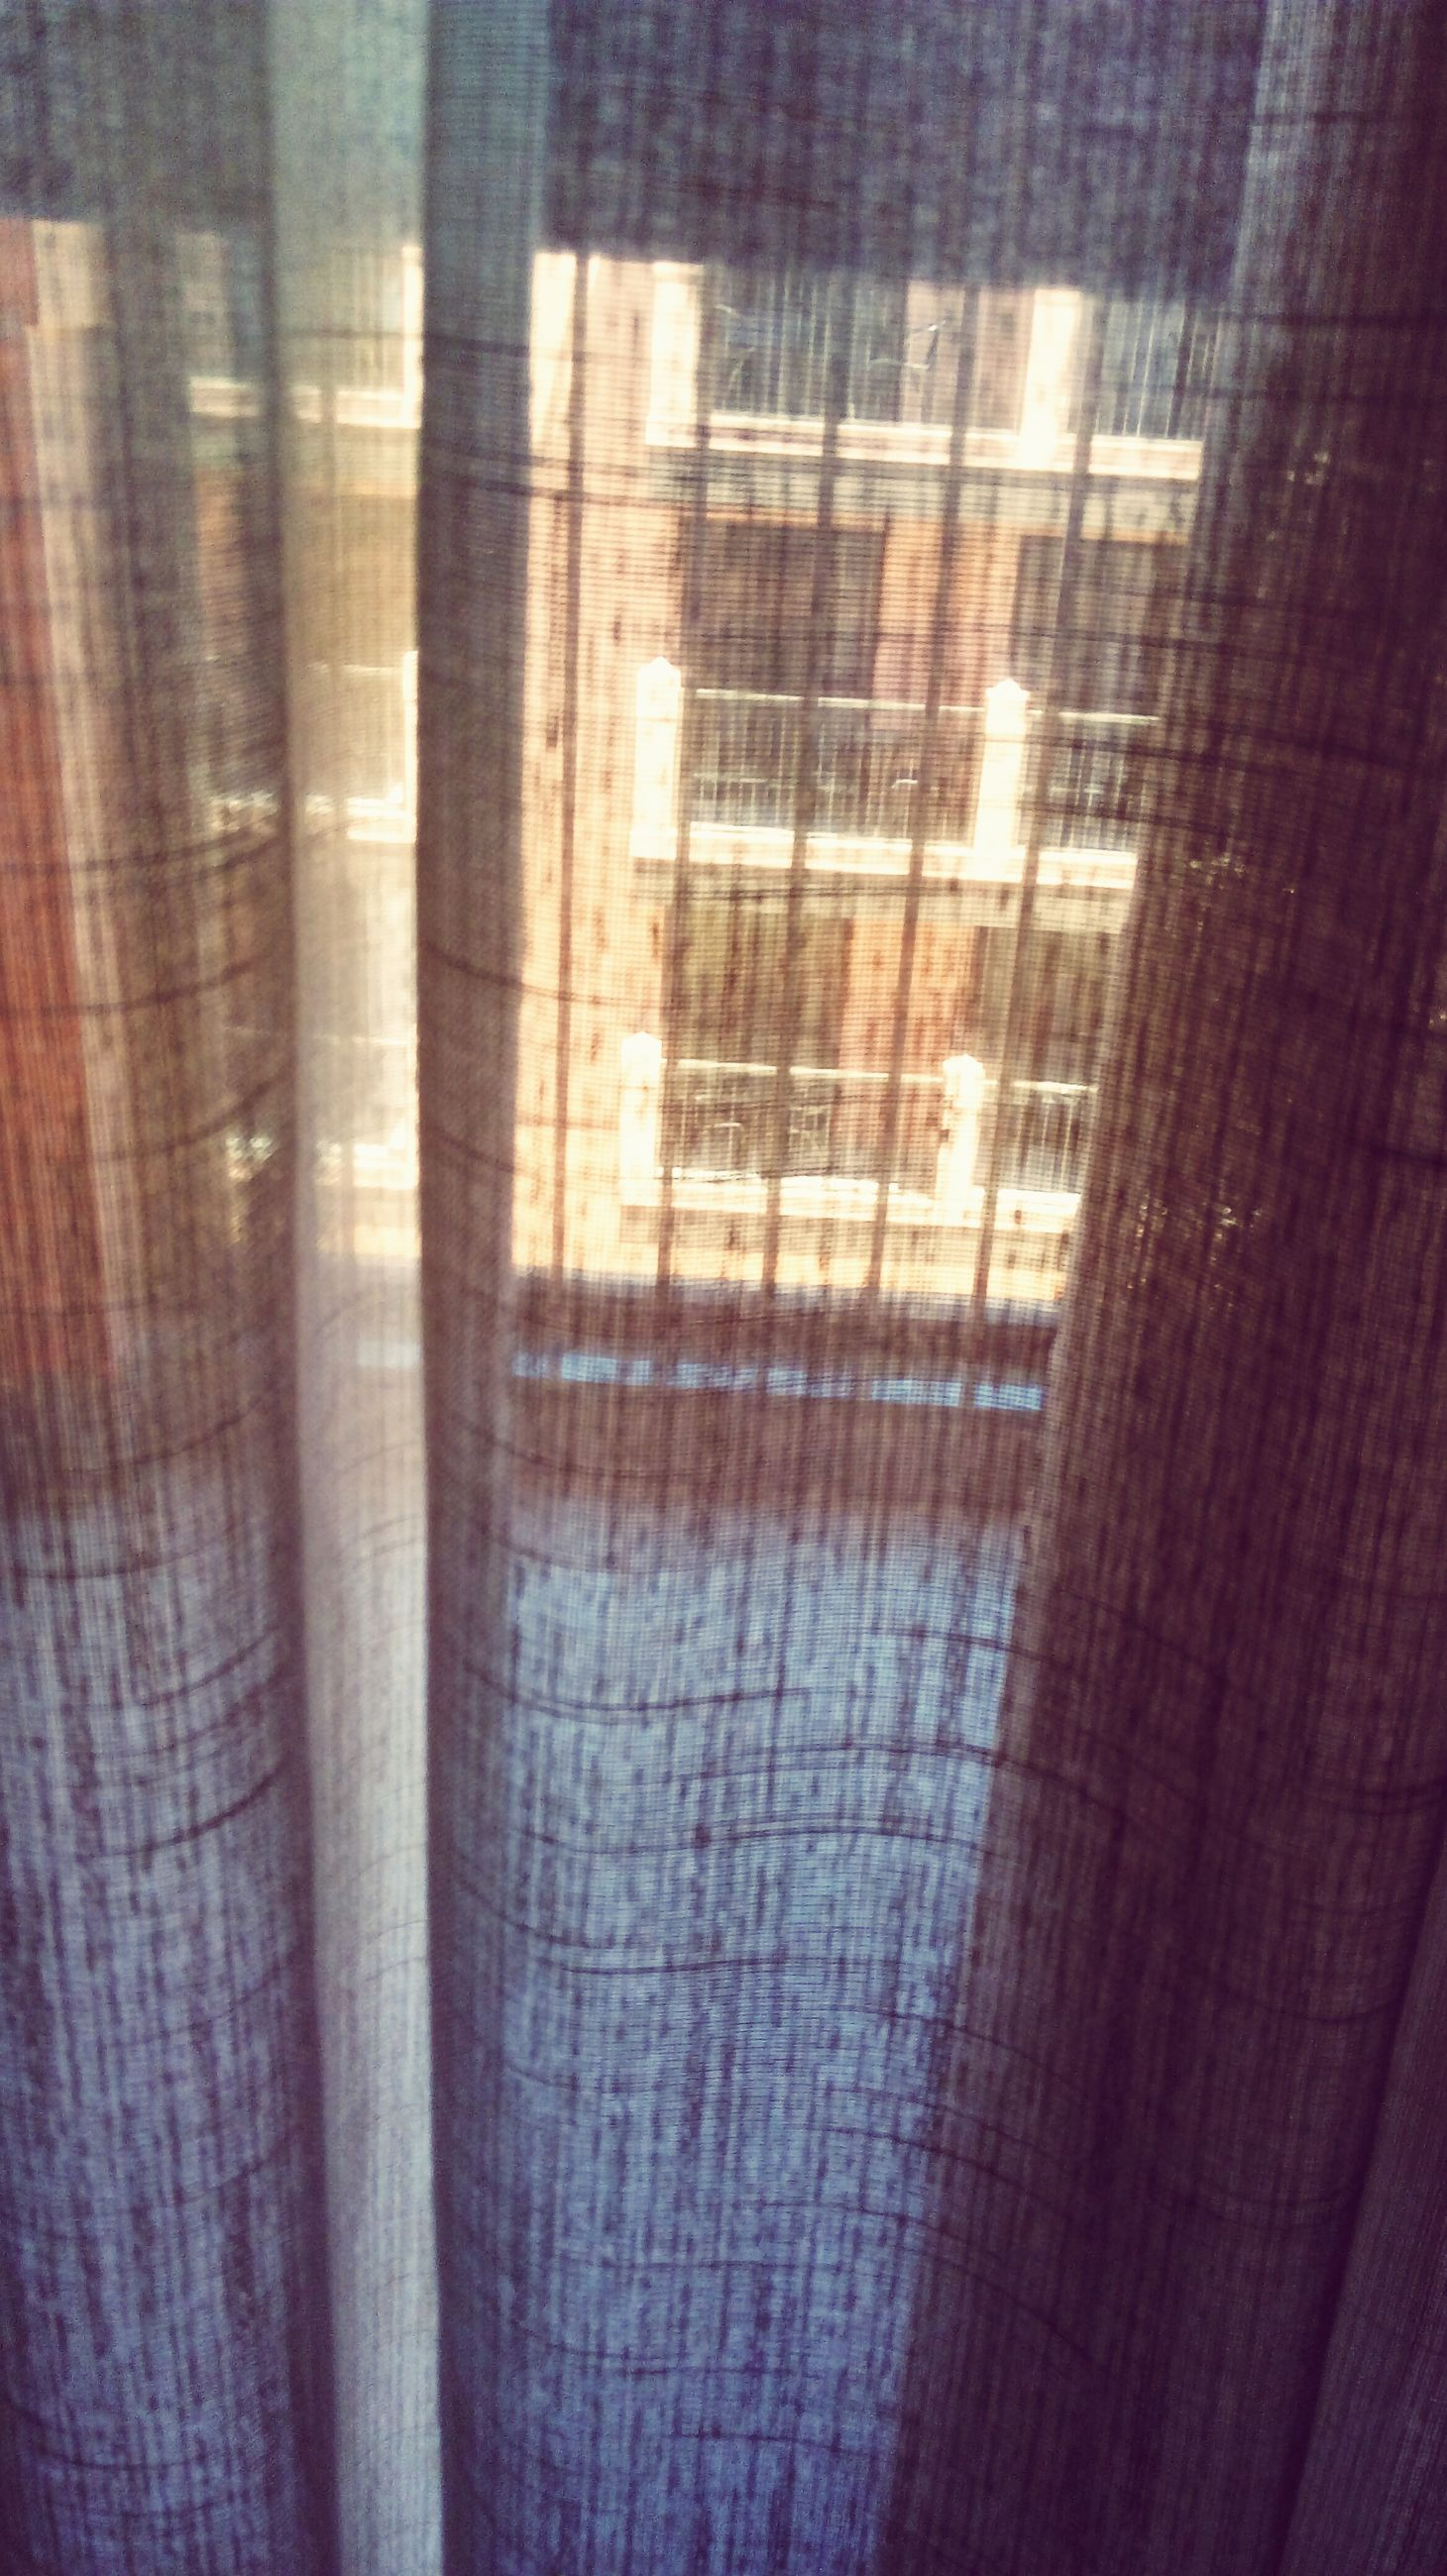 window, curtain, drapes, full frame, backgrounds, indoors, no people, day, close-up